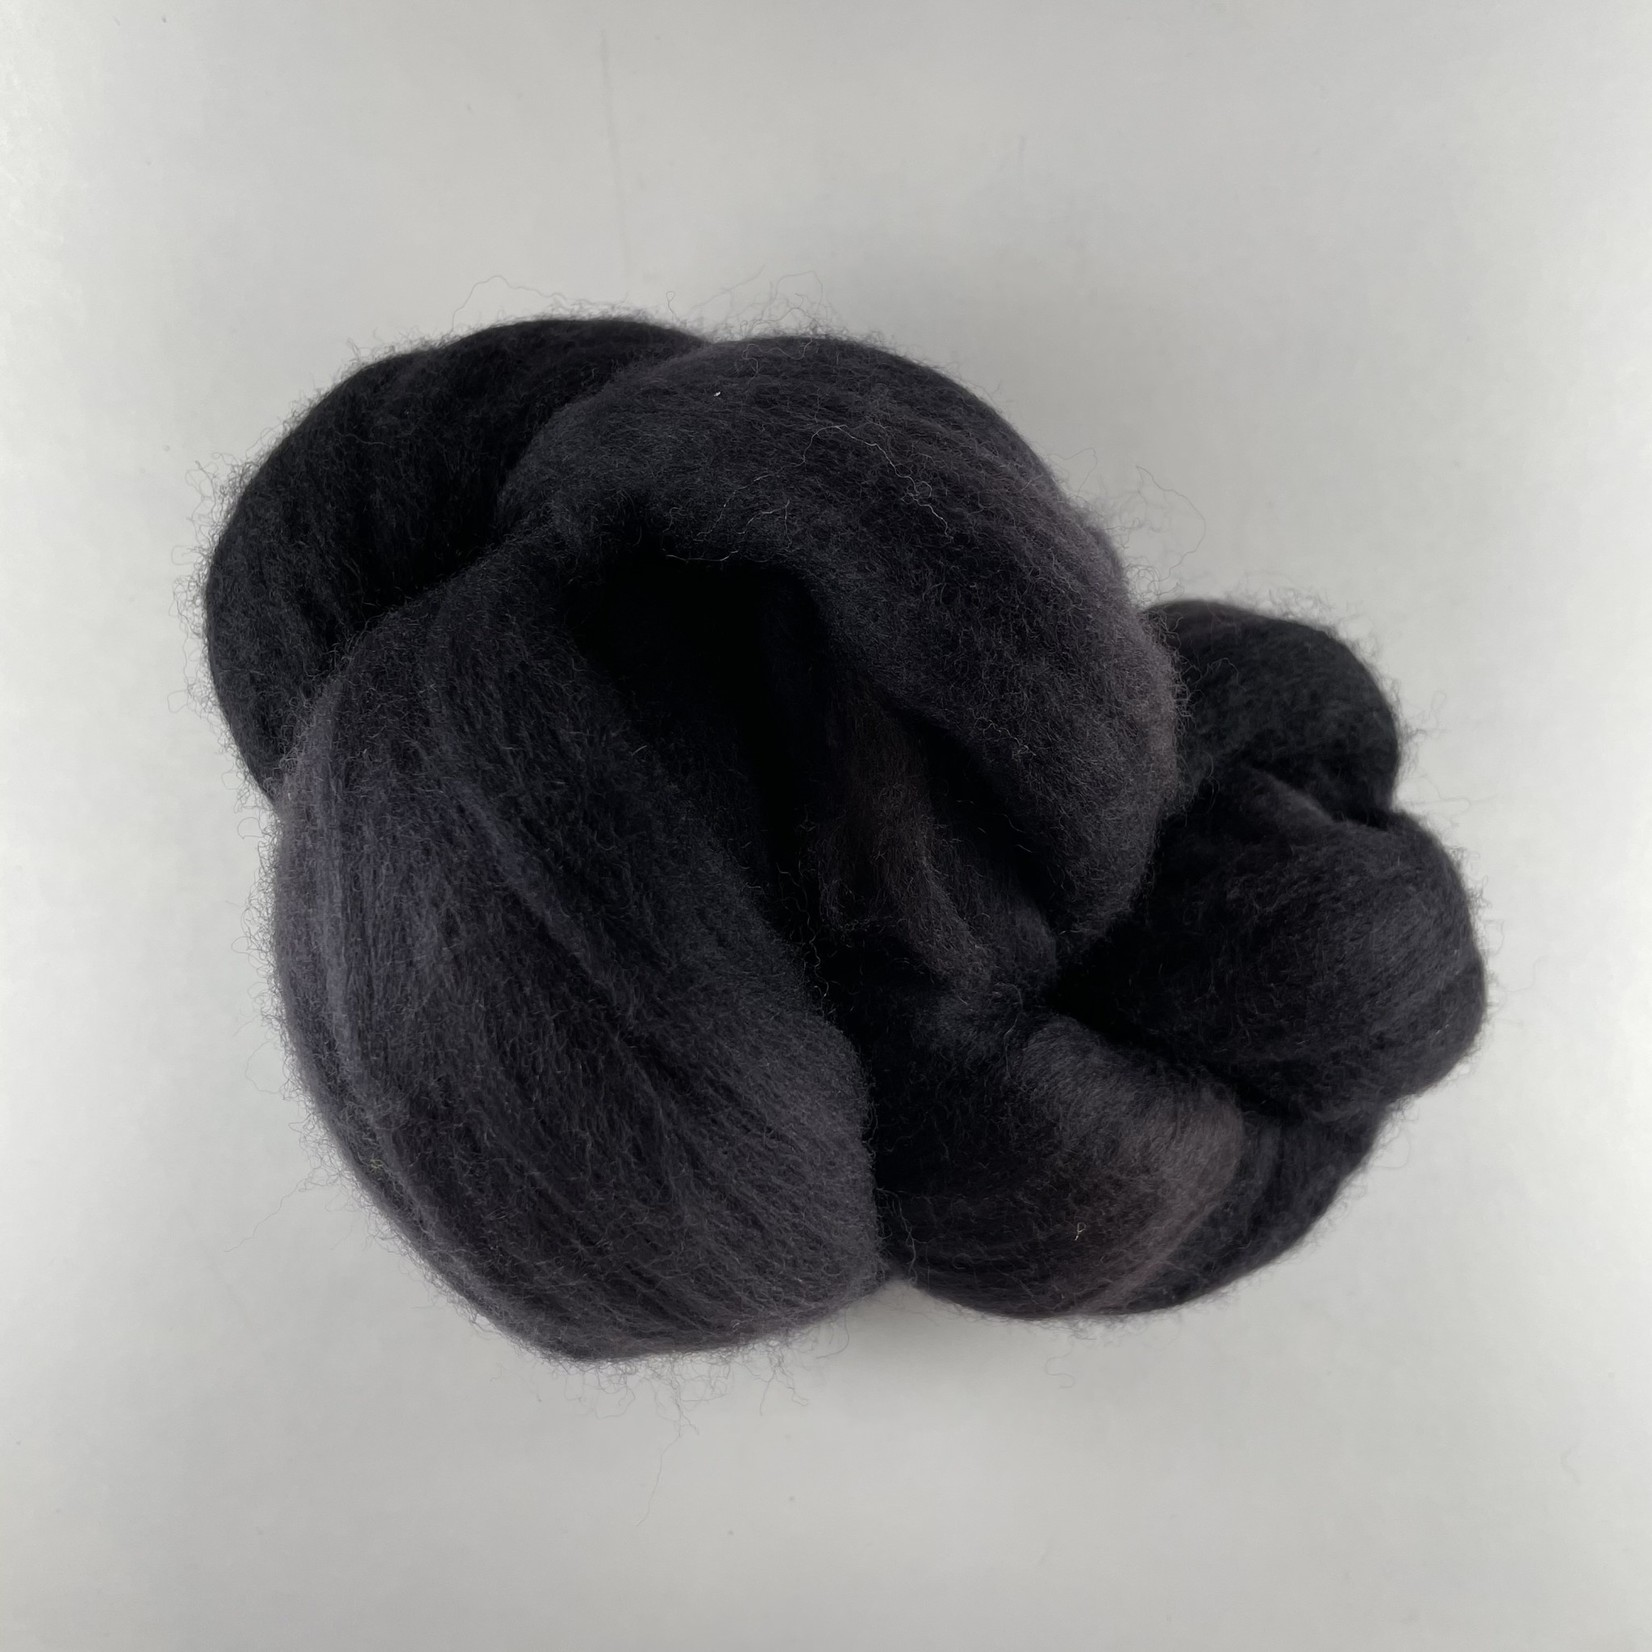 Fleece Artist Merino Sliver by Fleece Artist